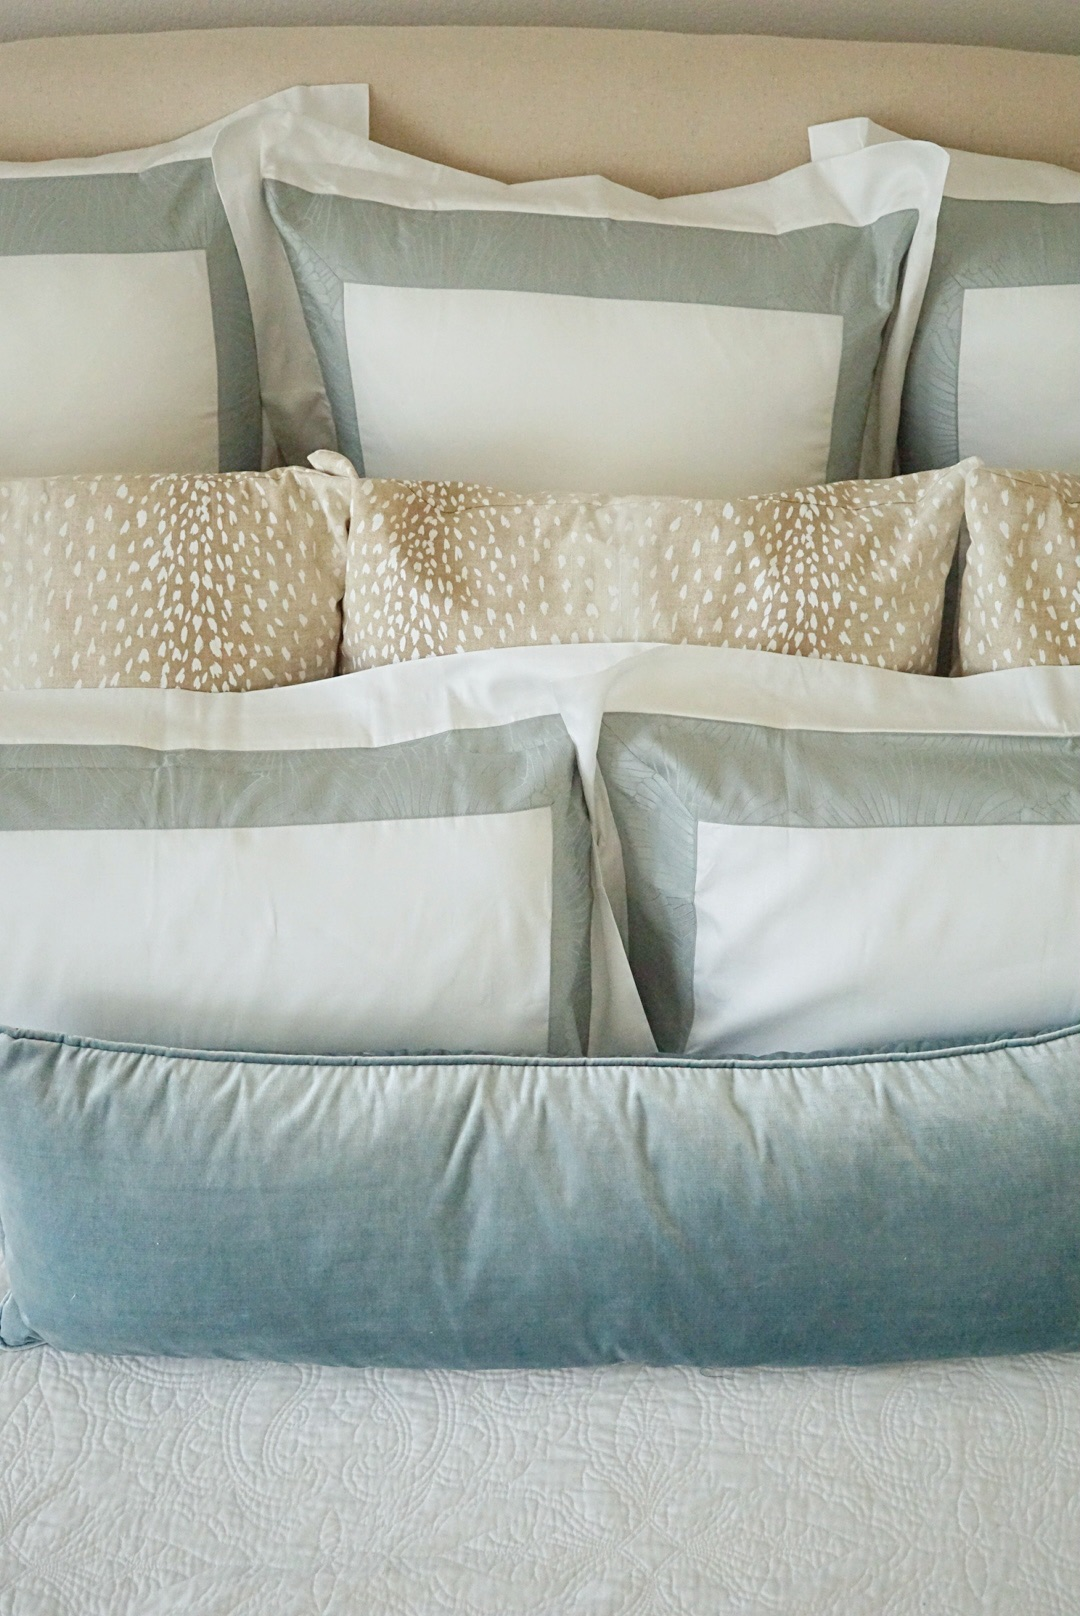 how to stack bedroom pillows | Master Bedroom Upgrades with Frette Bedding featured by top Dallas lifestyle blog Style Your Senses